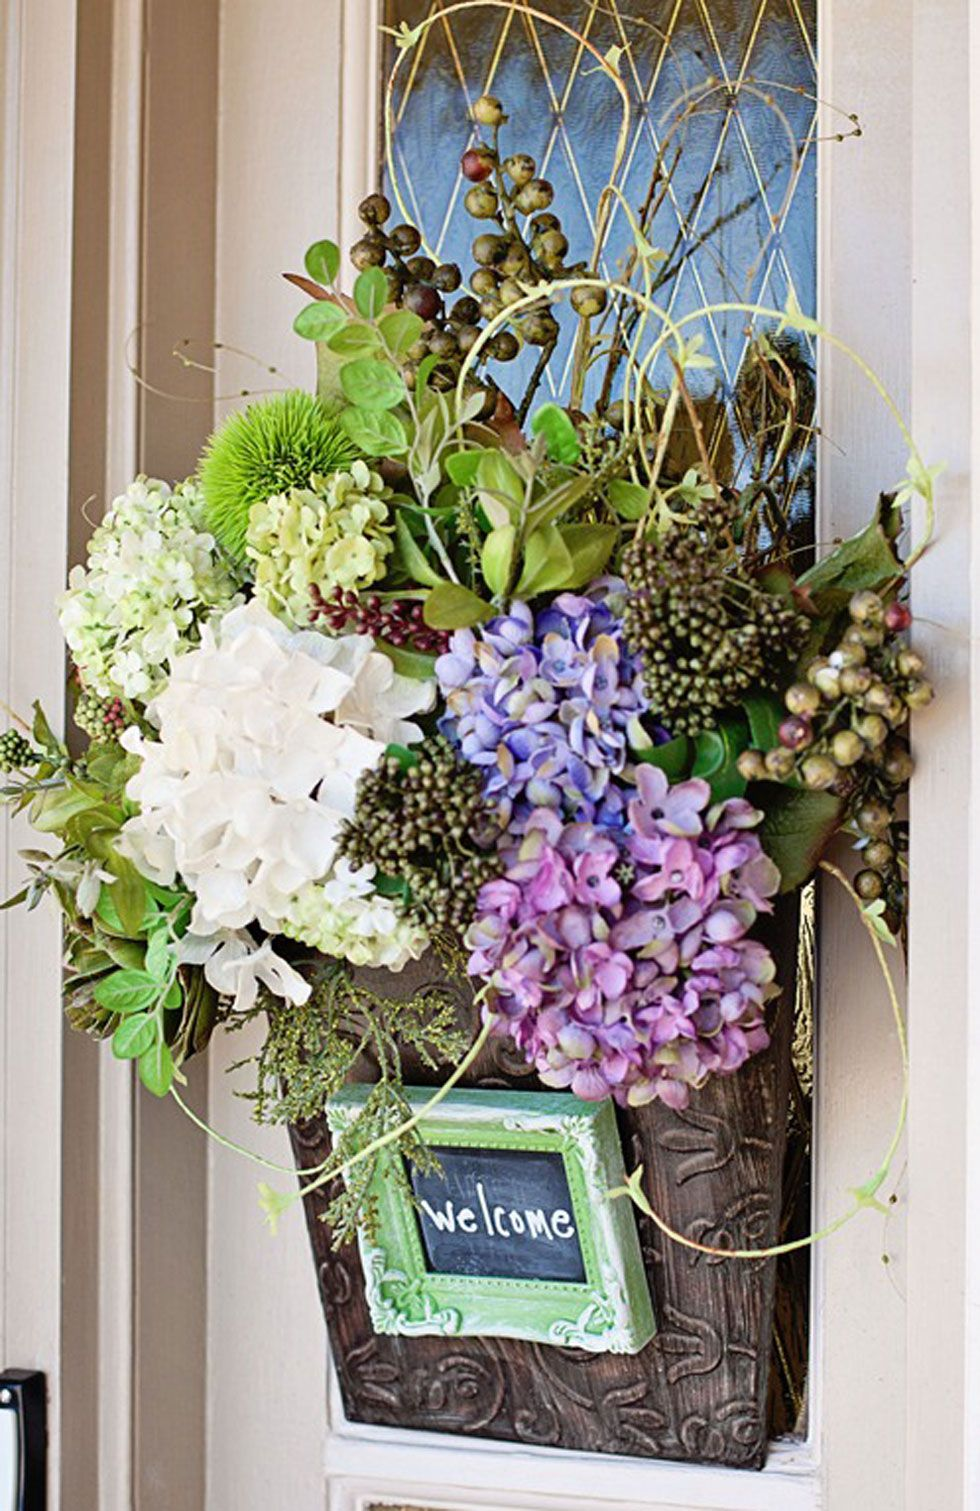 Bon Fill A Metal Basket With Flowers, Then Attach A Small Chalkboard To Write  Out A Welcome Message To Visitors.